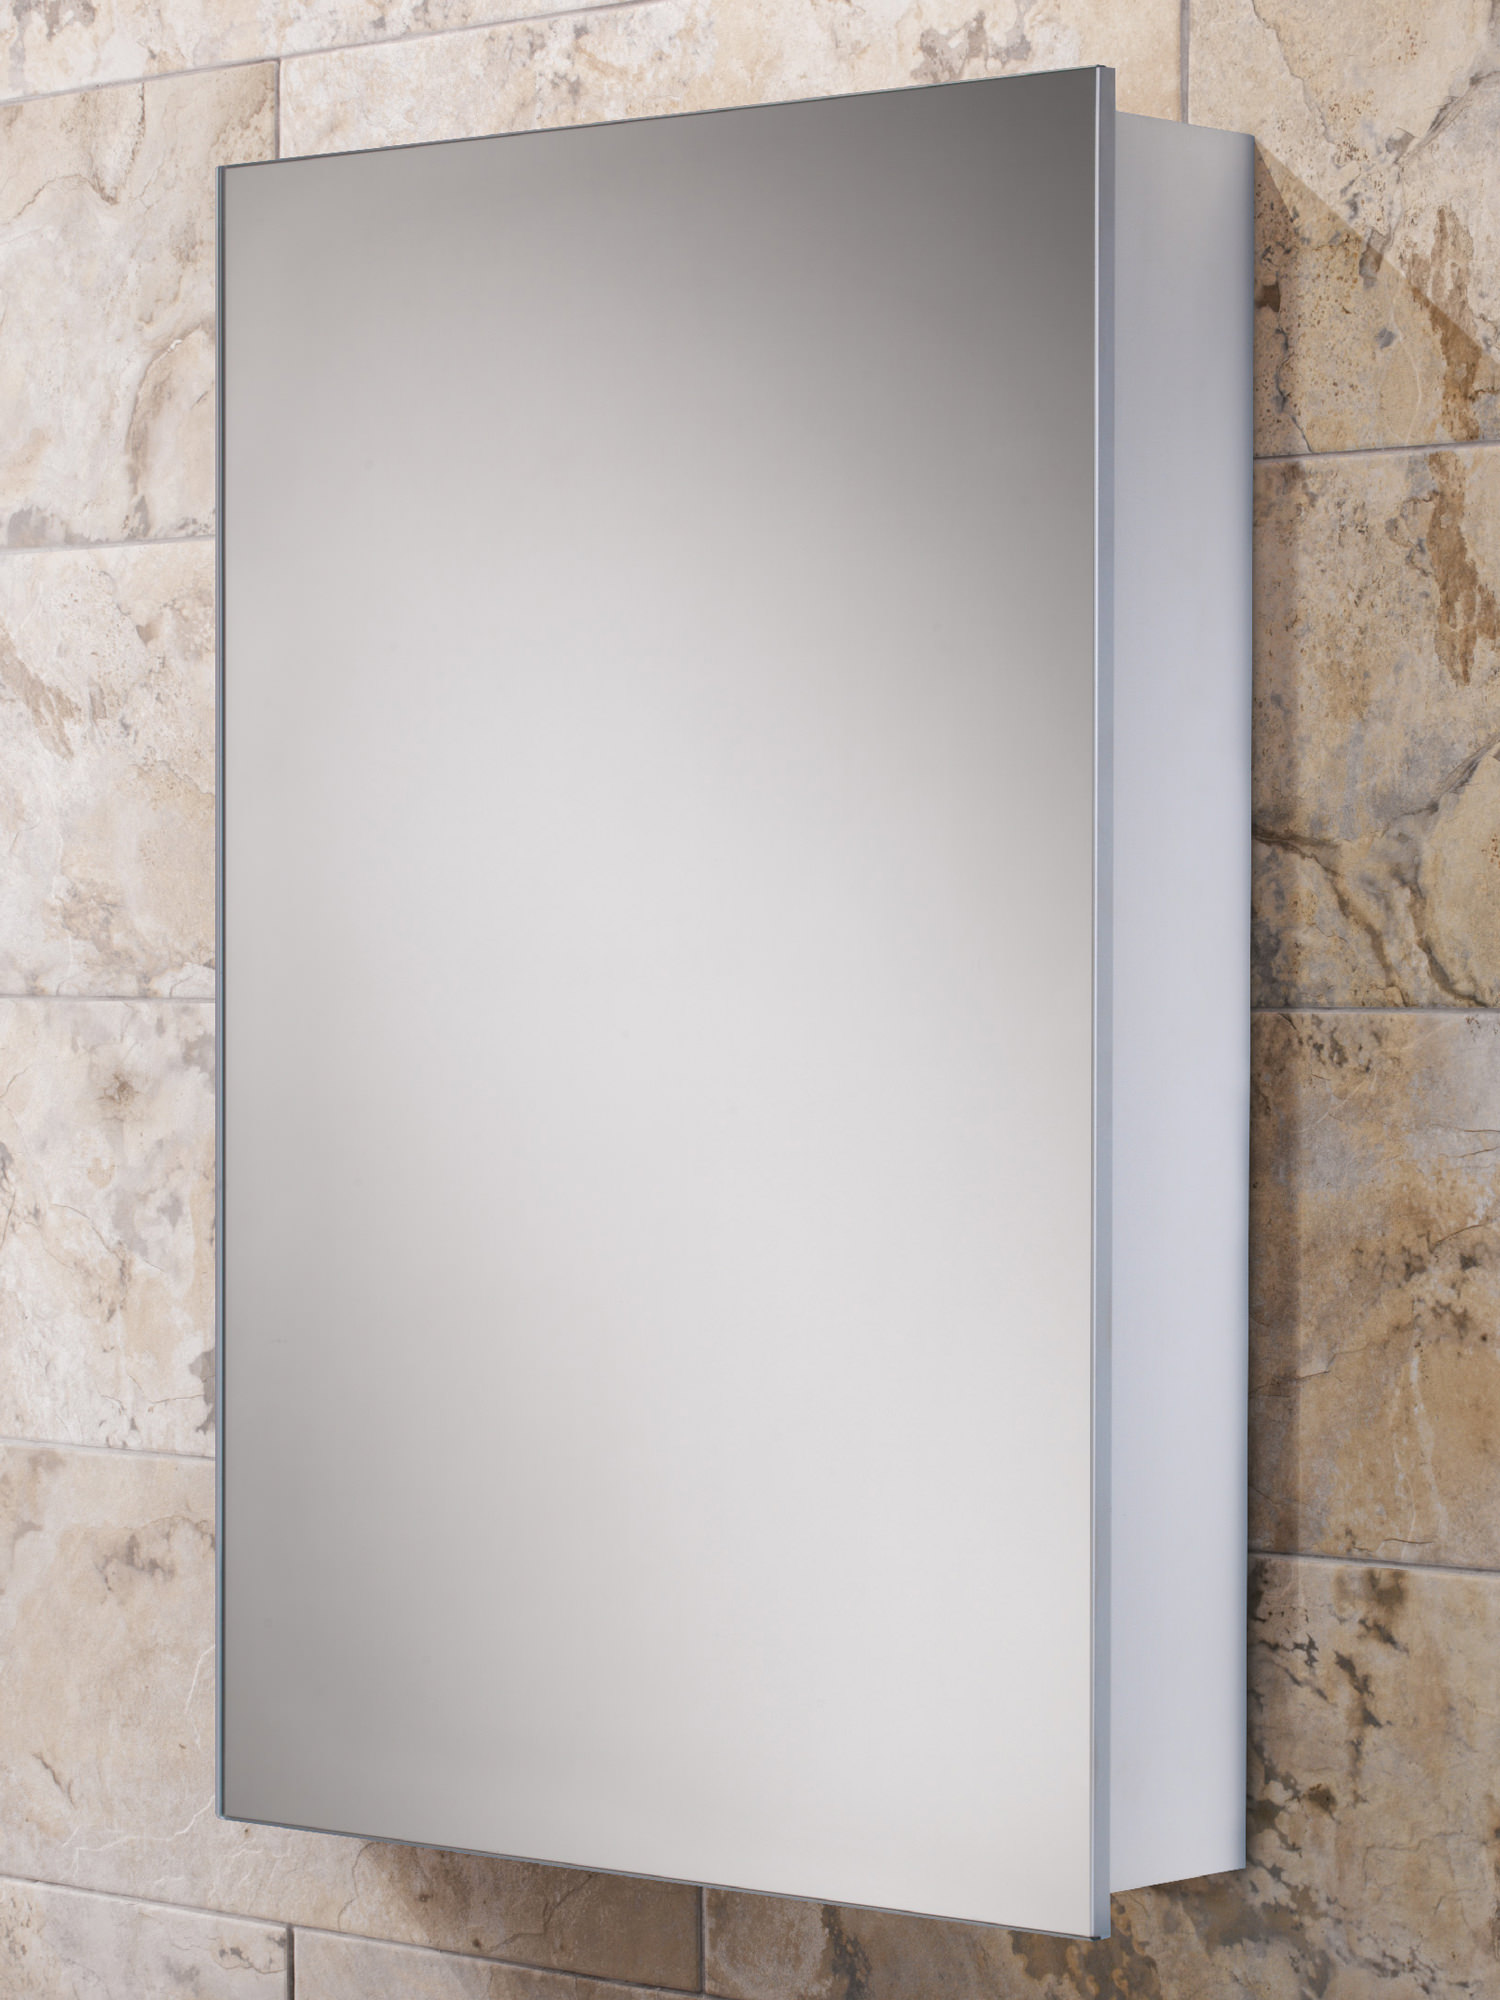 Hib callisto slim line aluminium bathroom cabinet 500 x 700mm for Slim mirrored bathroom cabinet